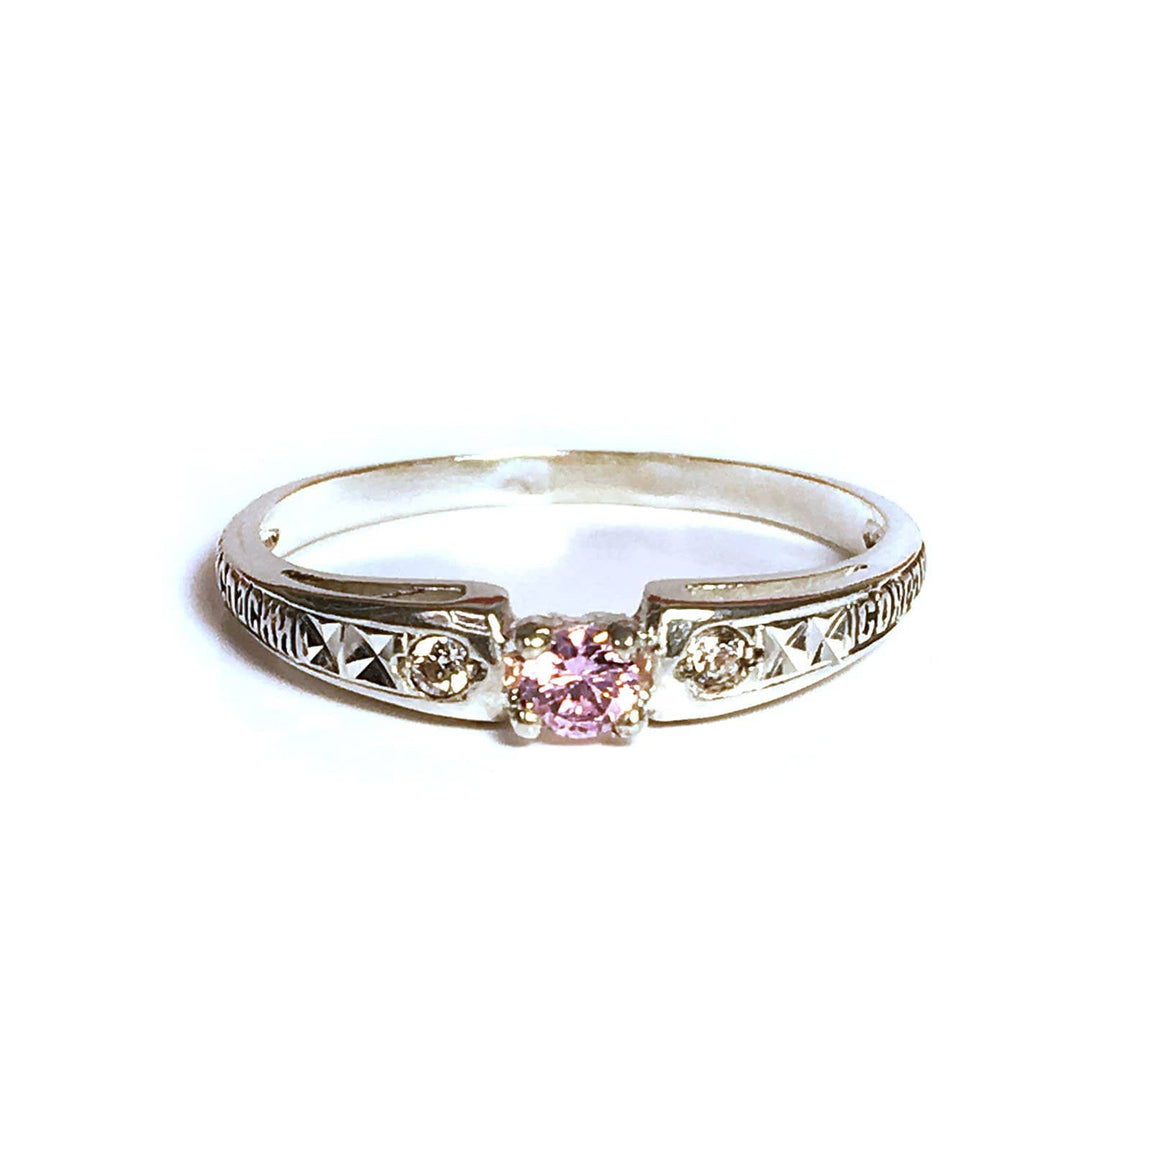 Birthstone Protection Ring: June Light Amethyst